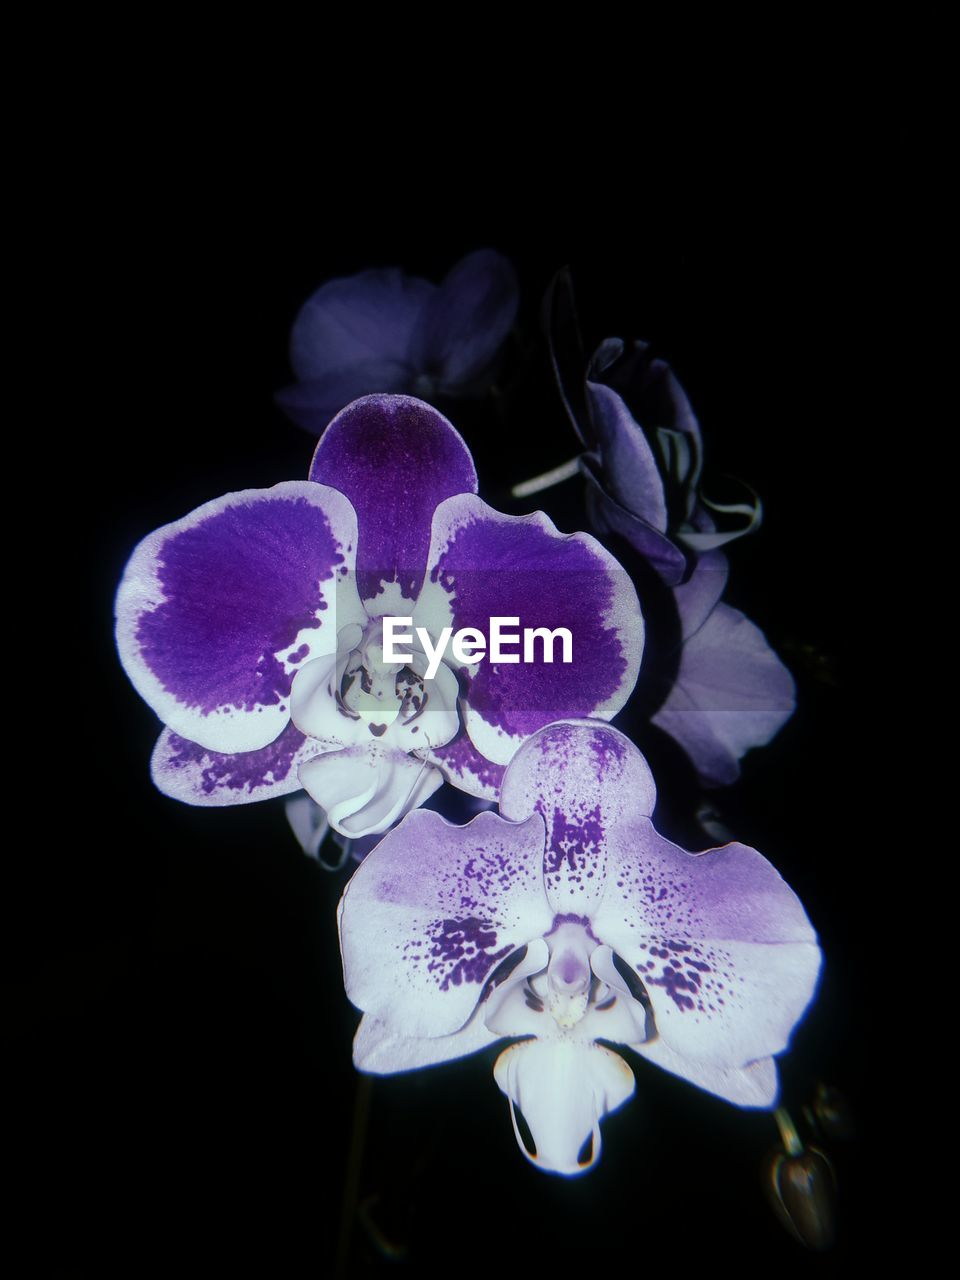 flower, flowering plant, fragility, vulnerability, petal, beauty in nature, plant, black background, studio shot, flower head, freshness, inflorescence, purple, close-up, growth, indoors, nature, no people, night, orchid, pollen